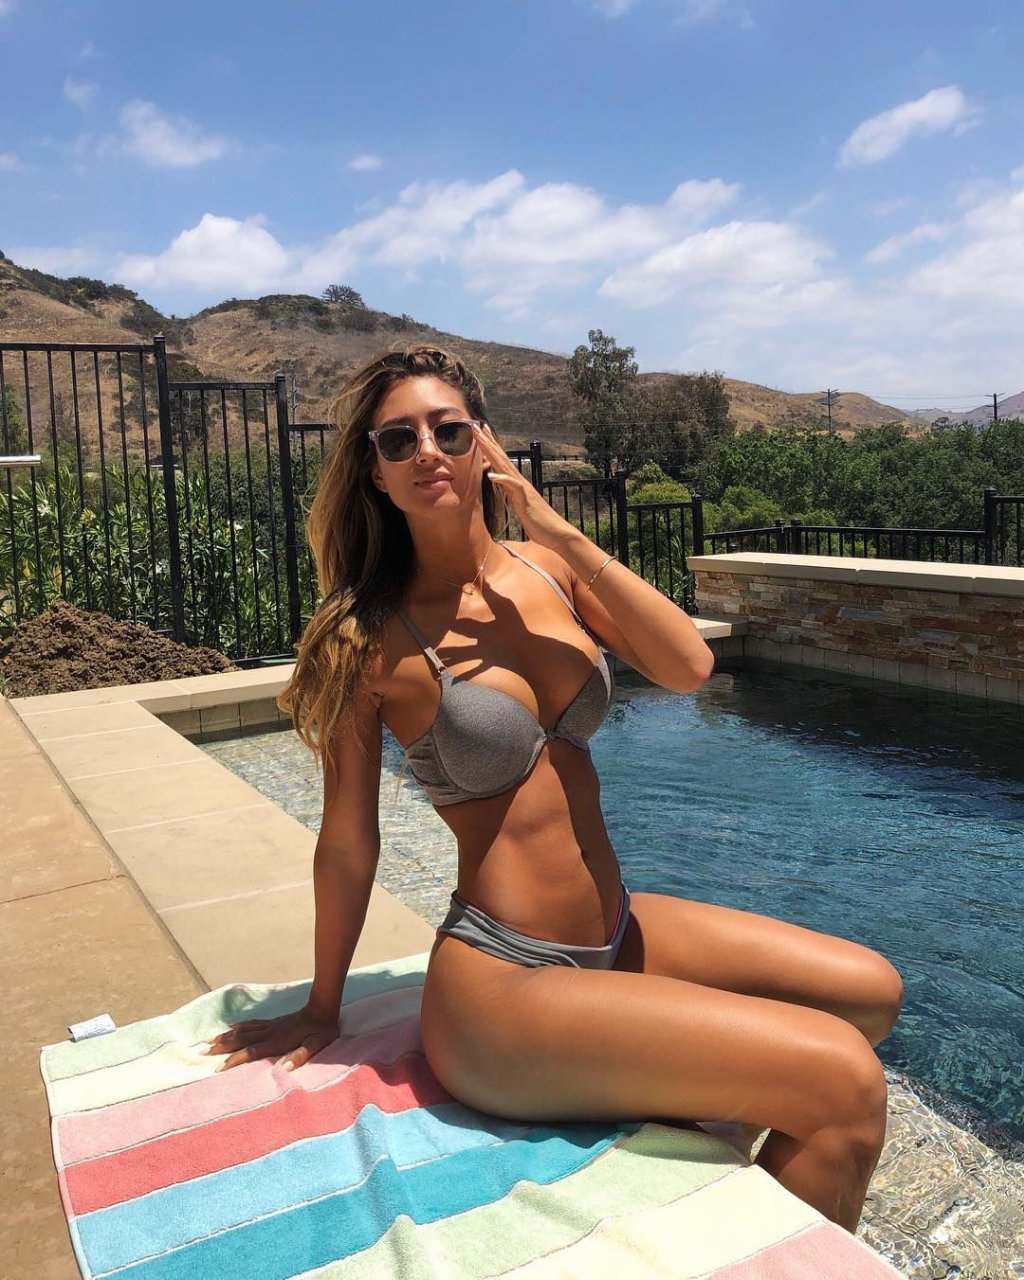 karina elle nude | #thefappening